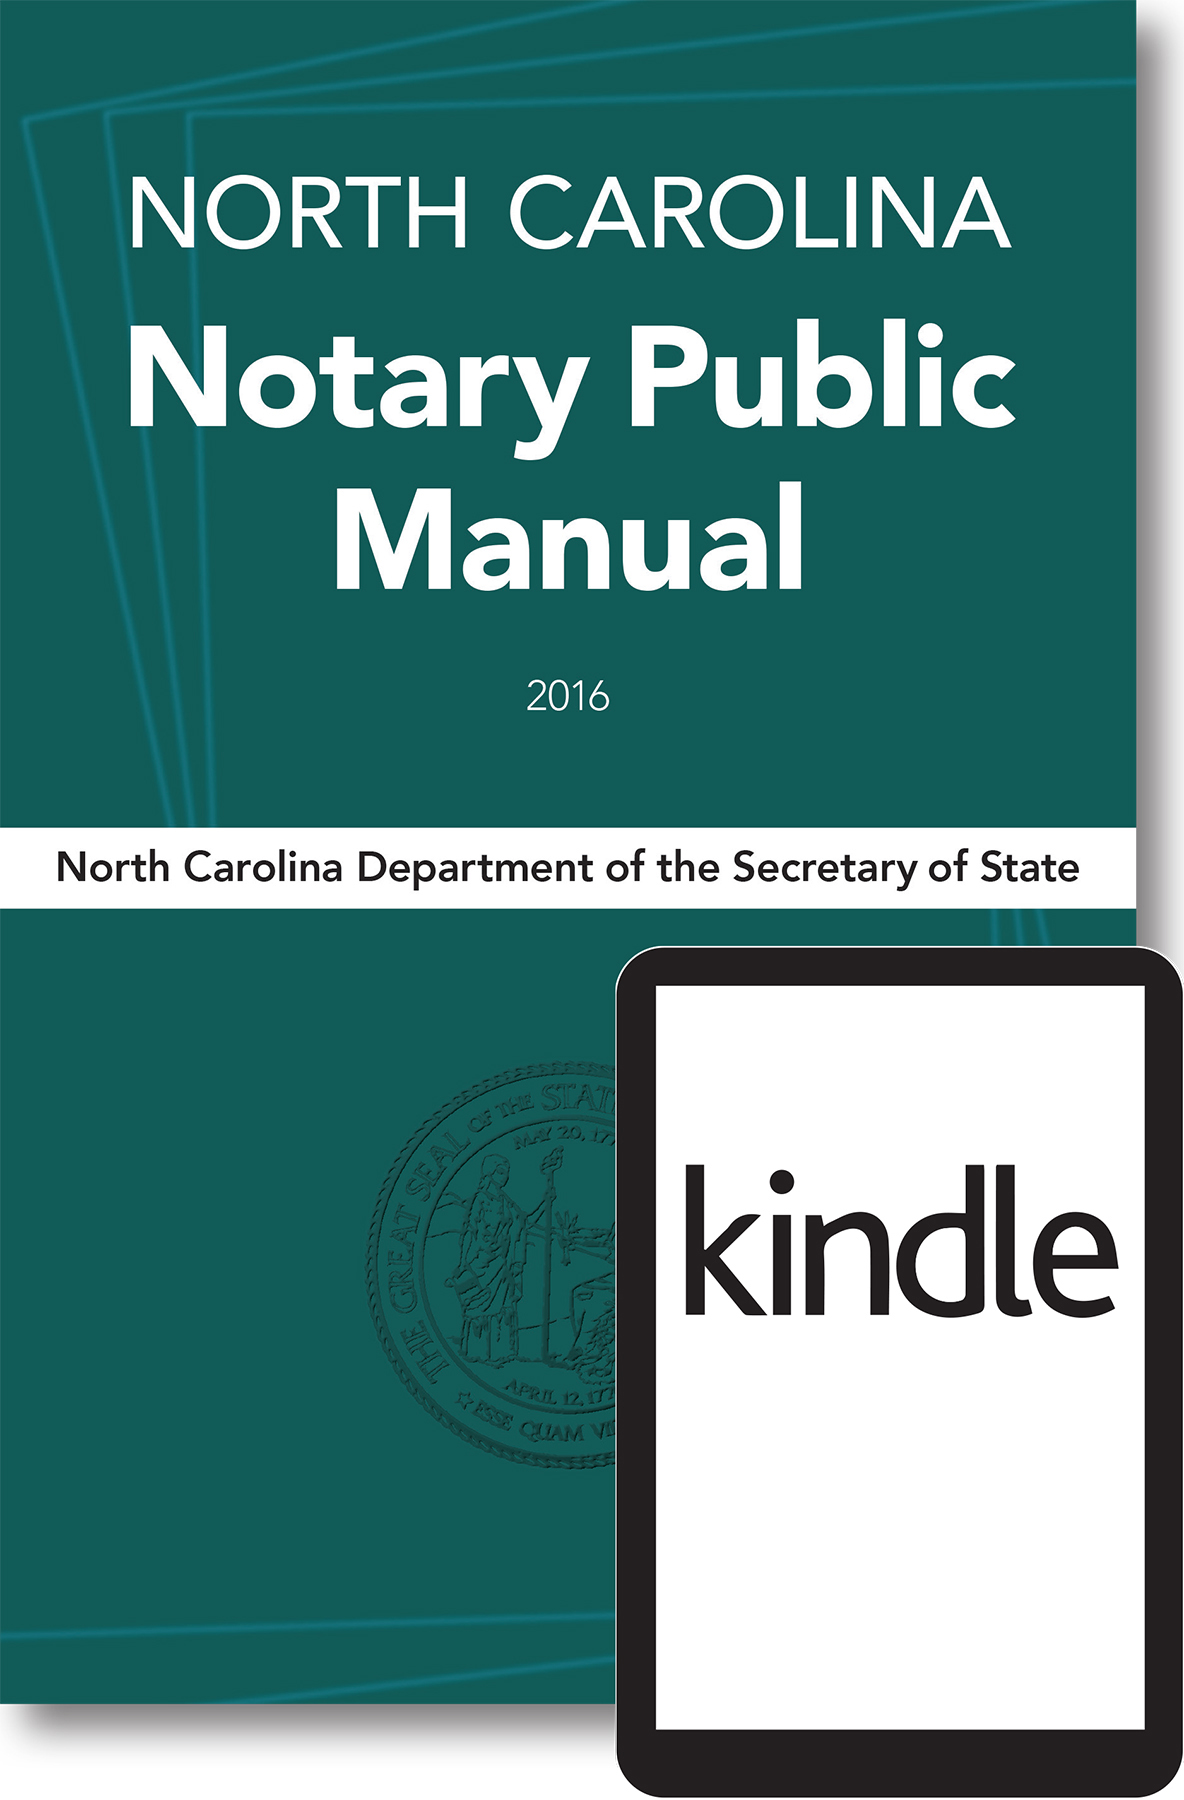 North Carolina Notary Public Manual, eBook for Kindle